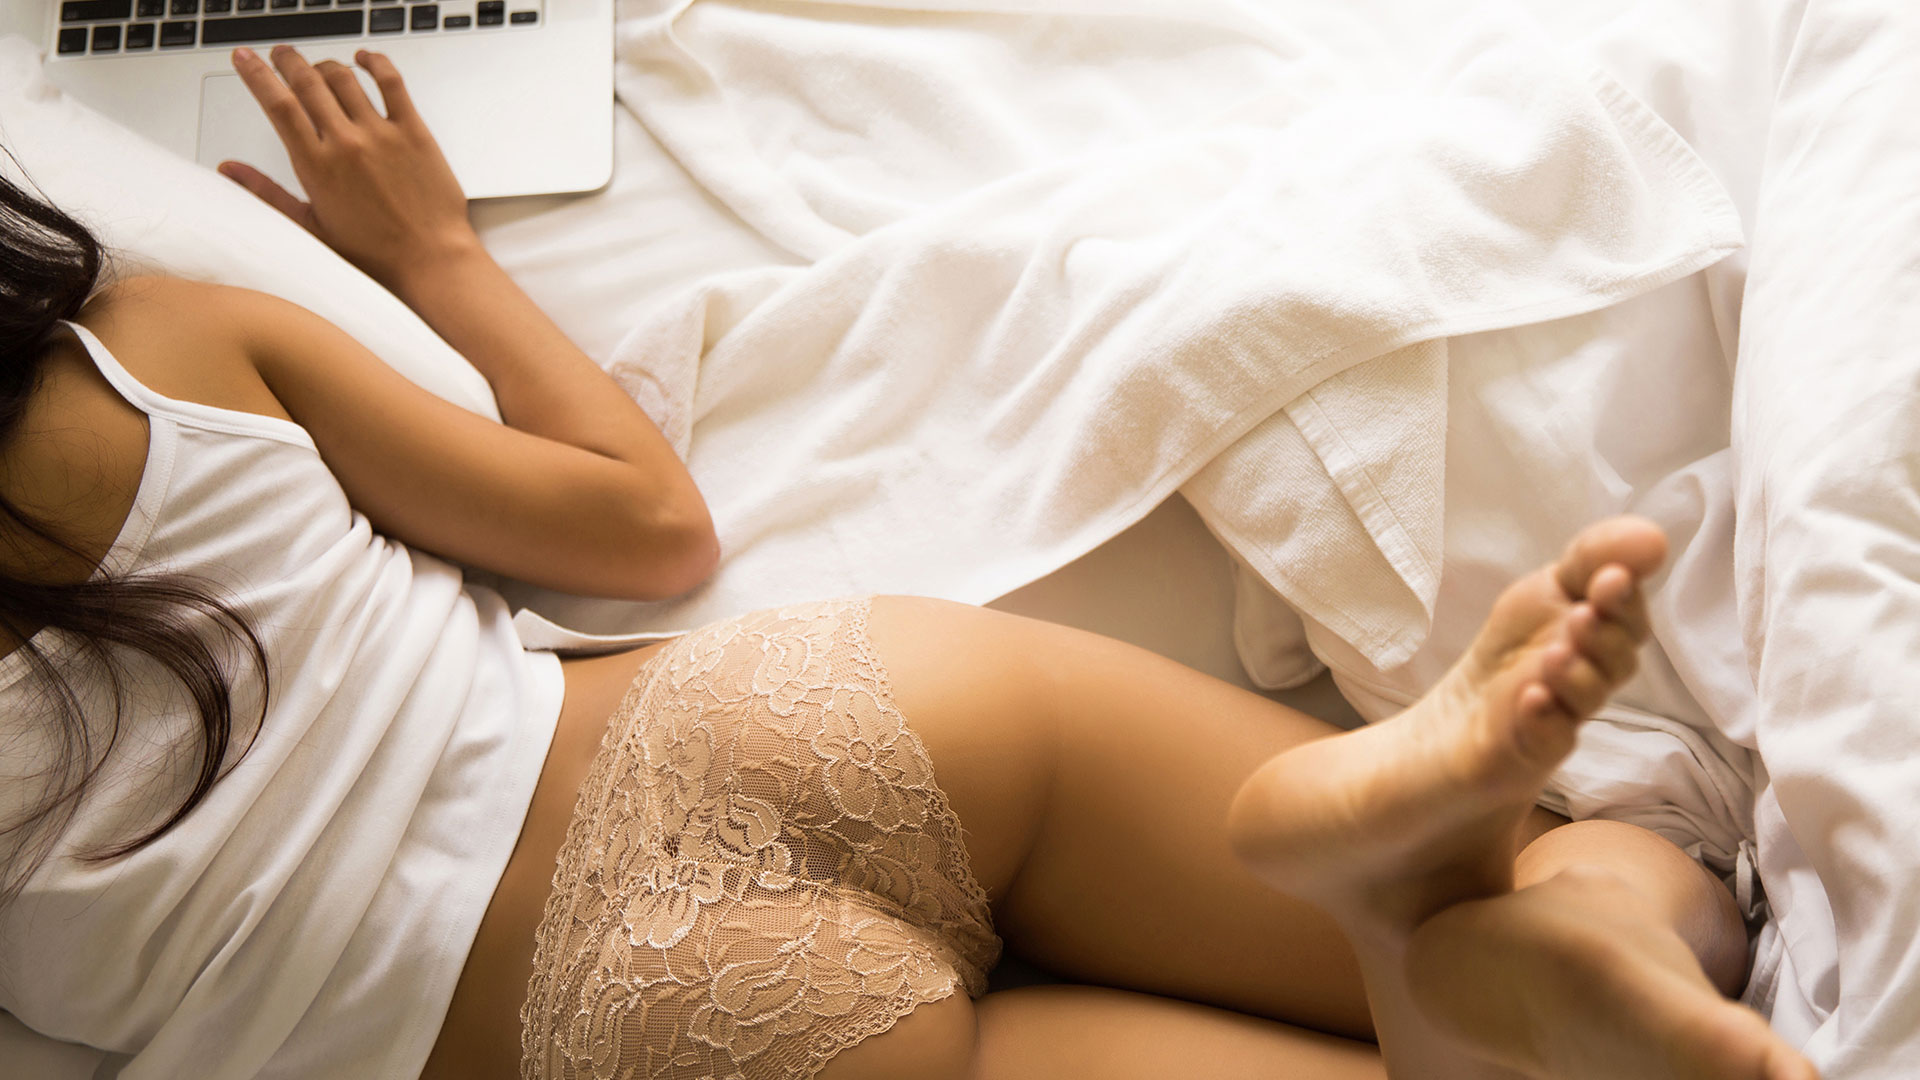 How Being a Cam Girl Helped Me Own My Sexuality